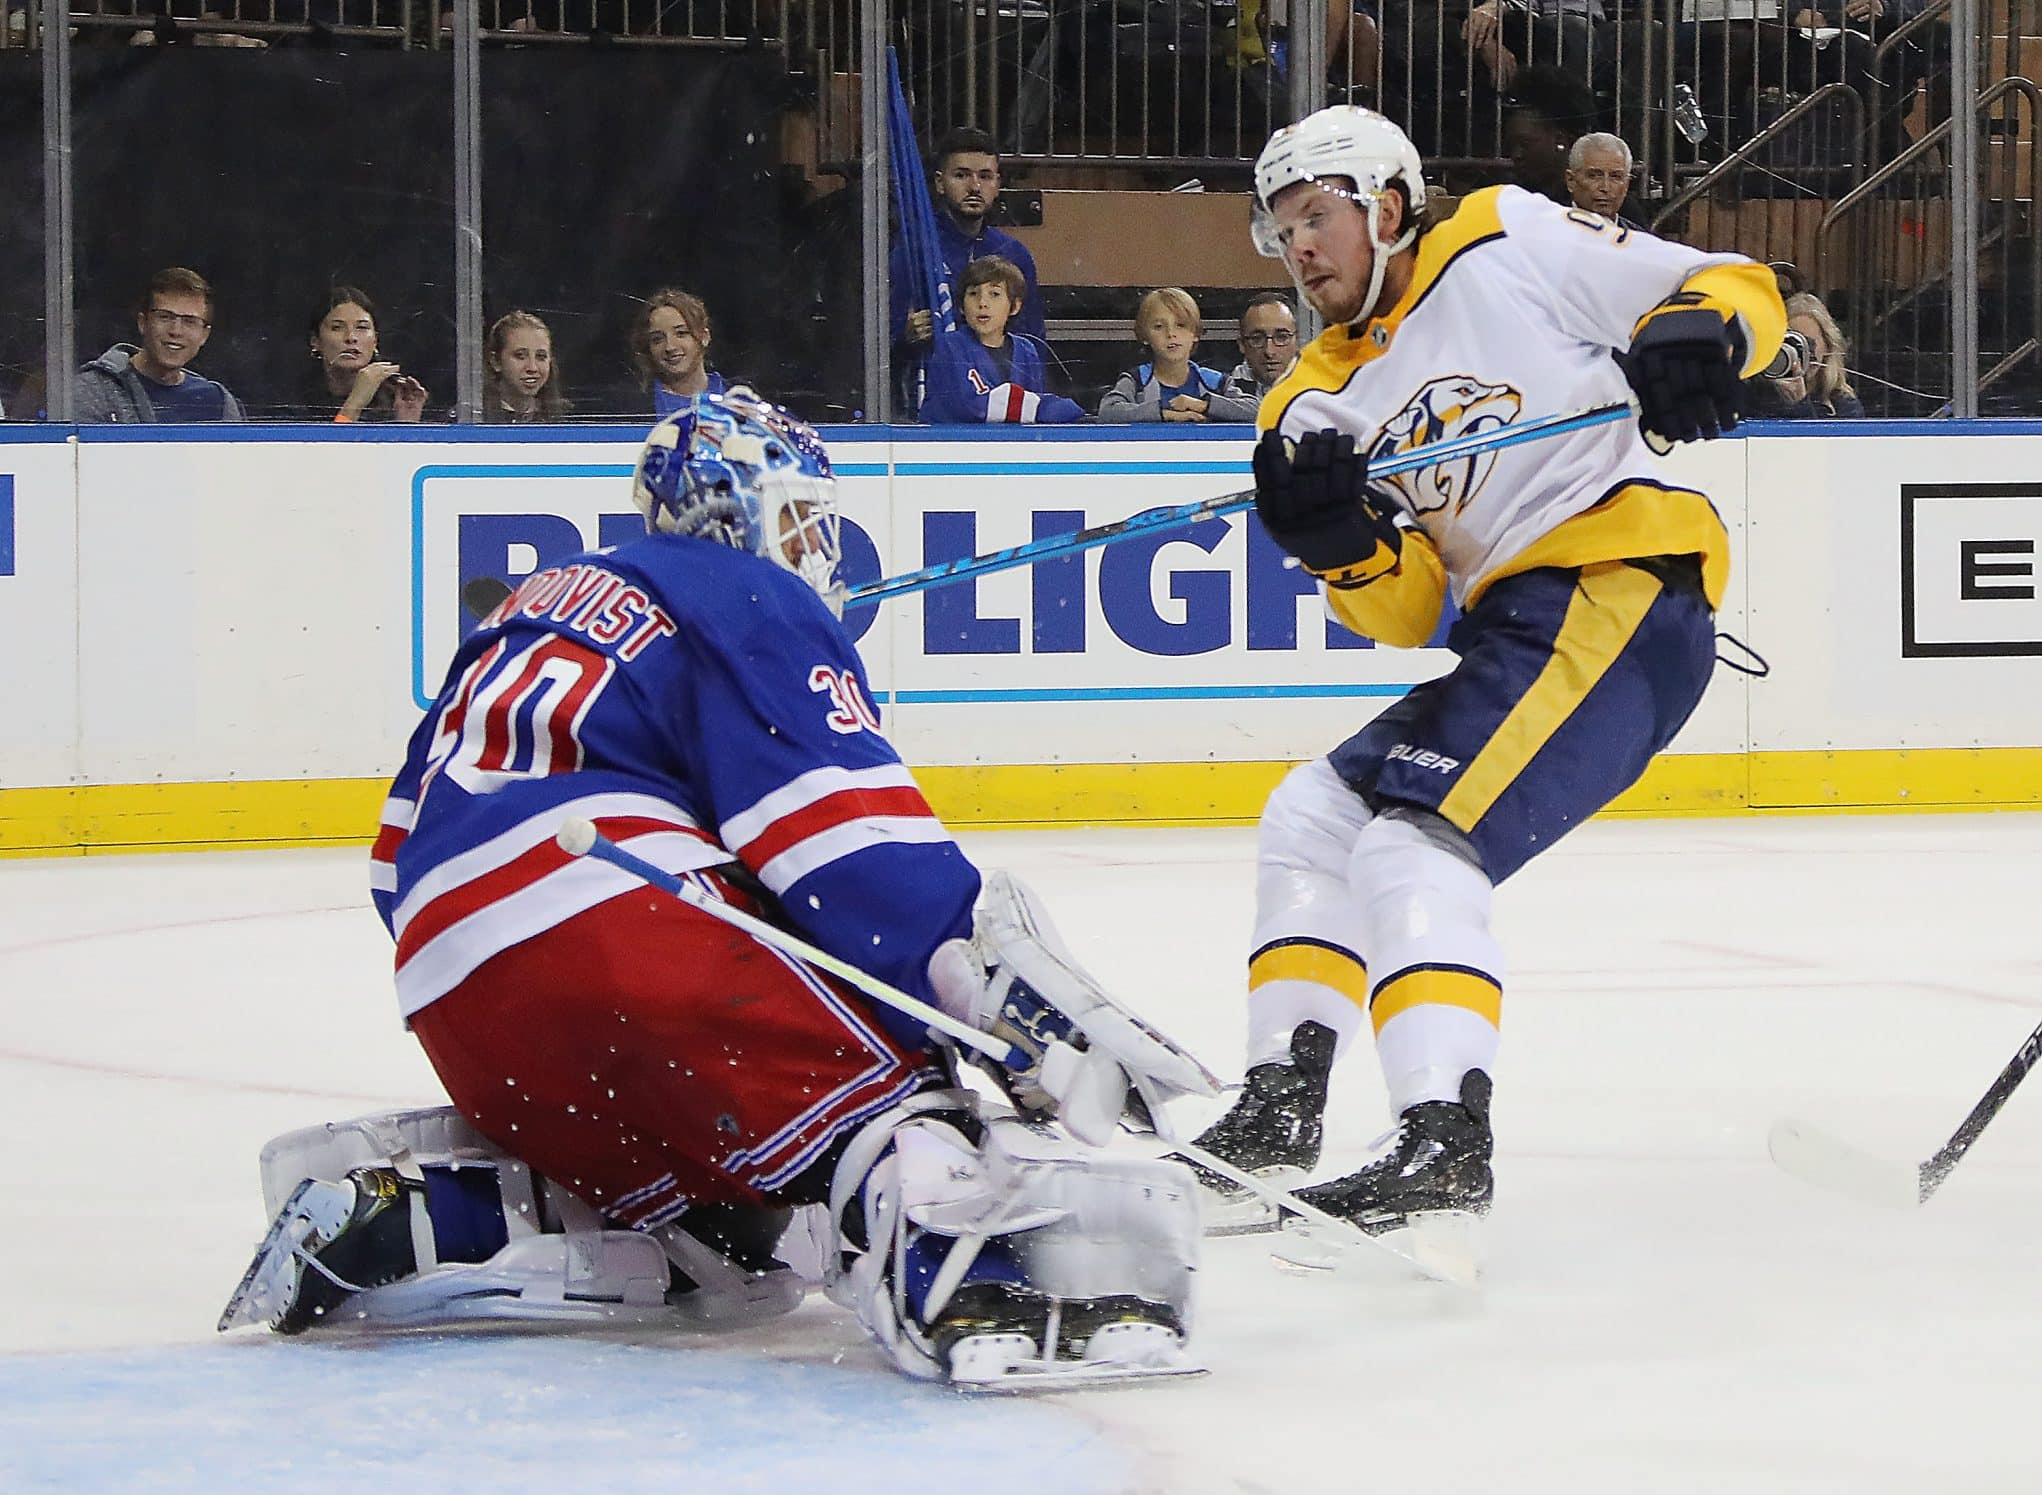 f4ee0e5a577 New York Rangers show signs of life but, drop season opener 3-2 at the  Garden (Highlights)